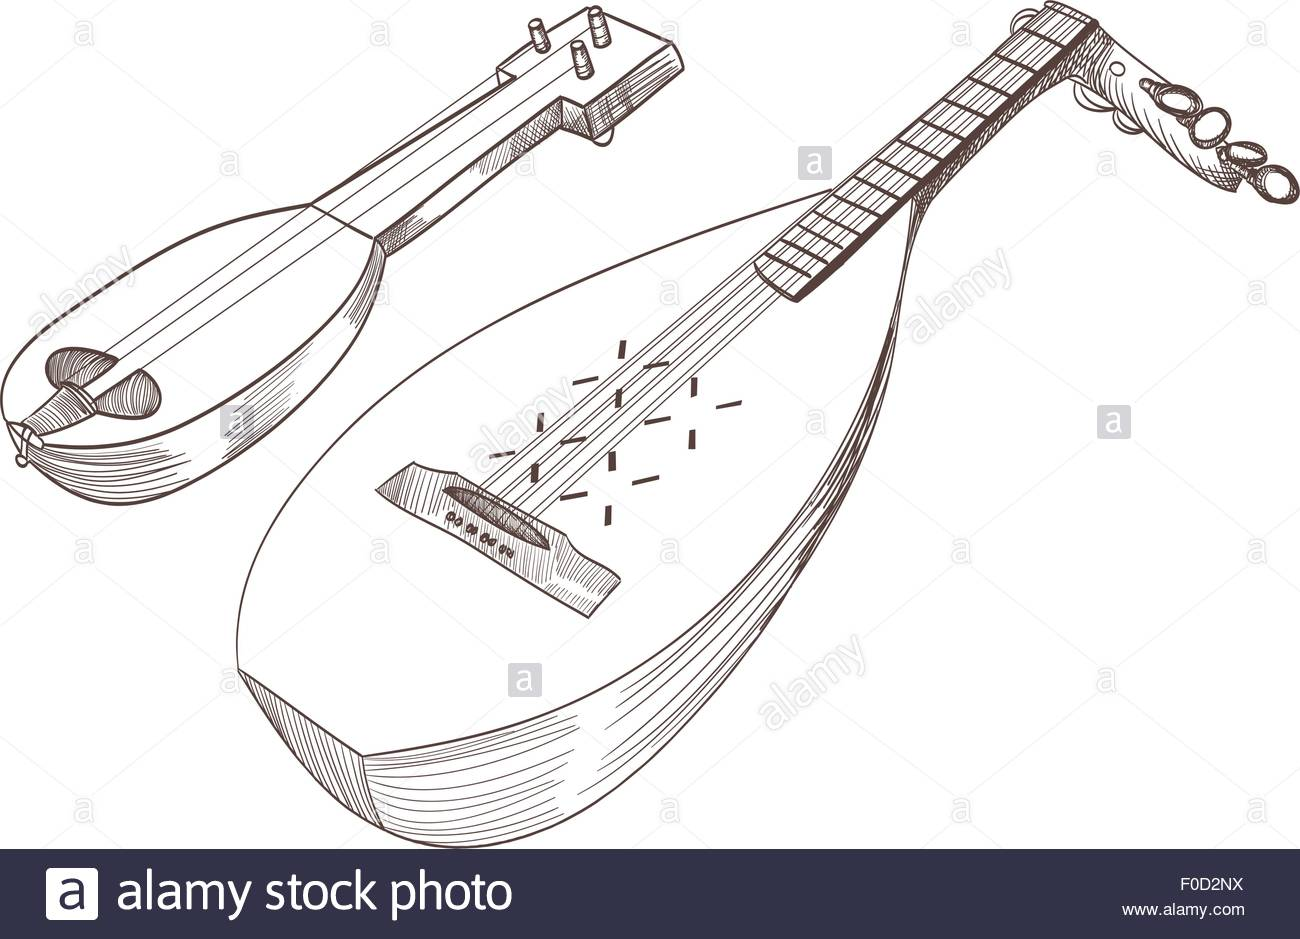 1300x939 Cobza Musical Stringed Instruments Drawing Stock Vector Art